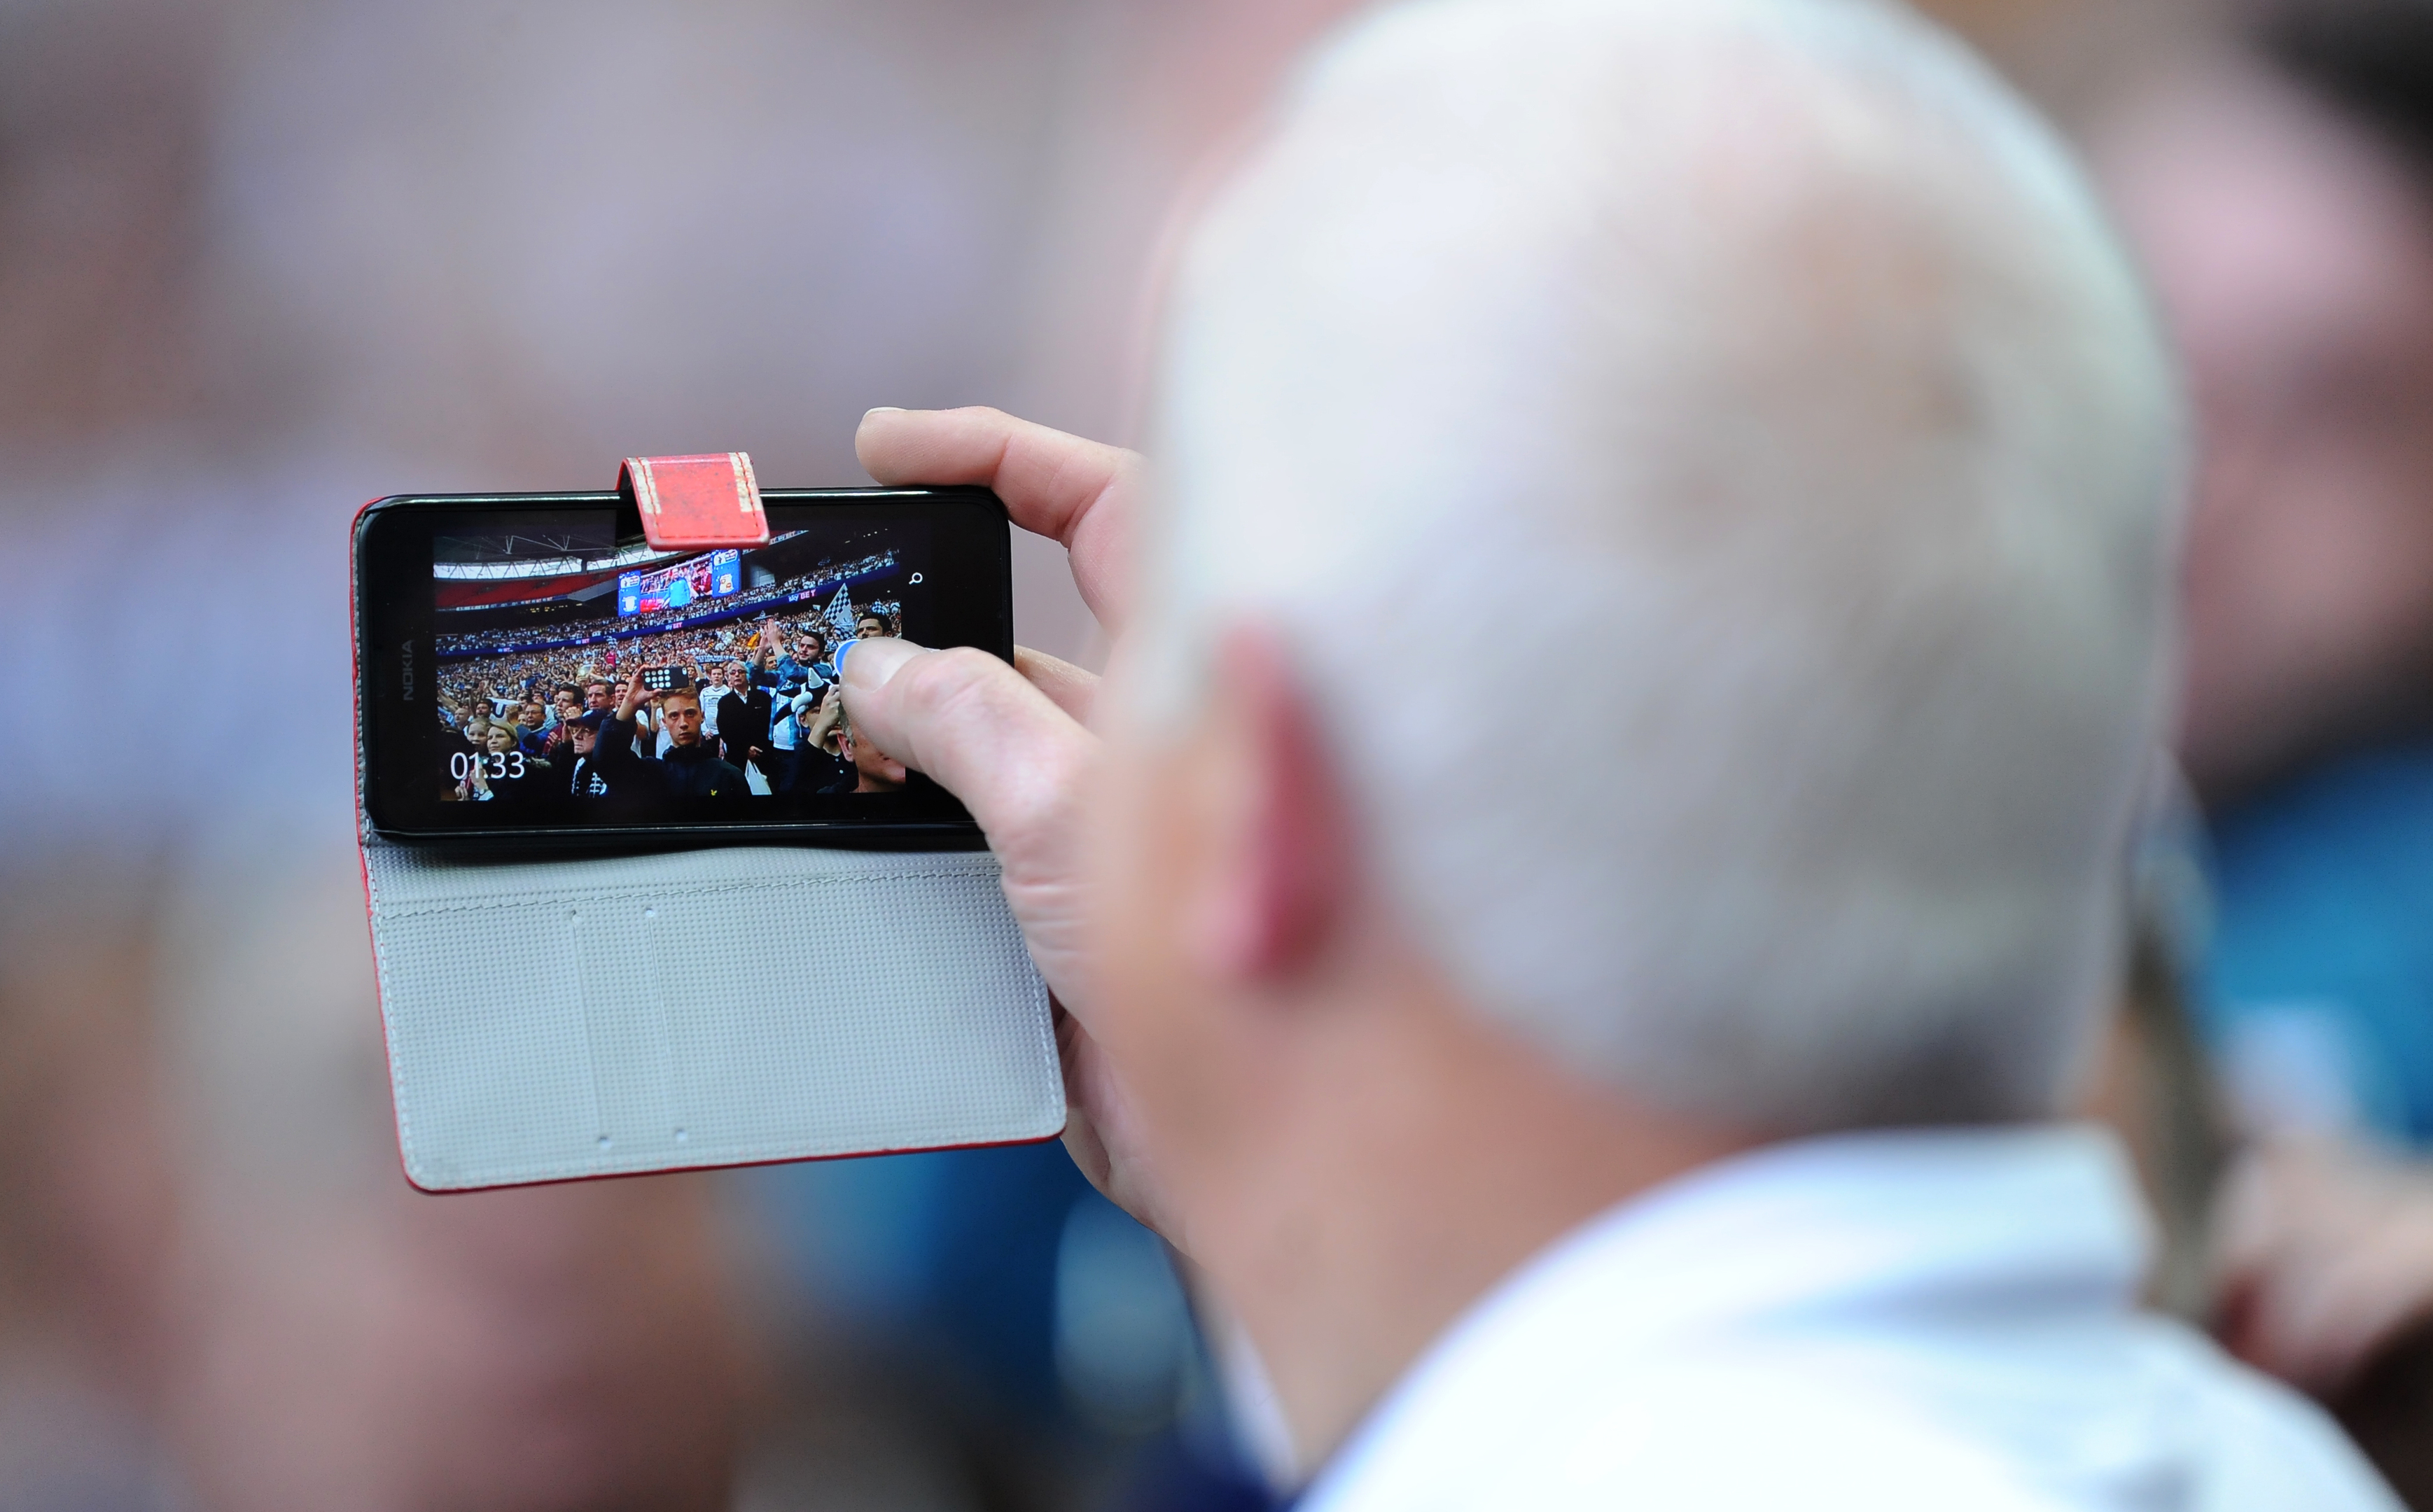 Fans are using technology at games (PA Archive)